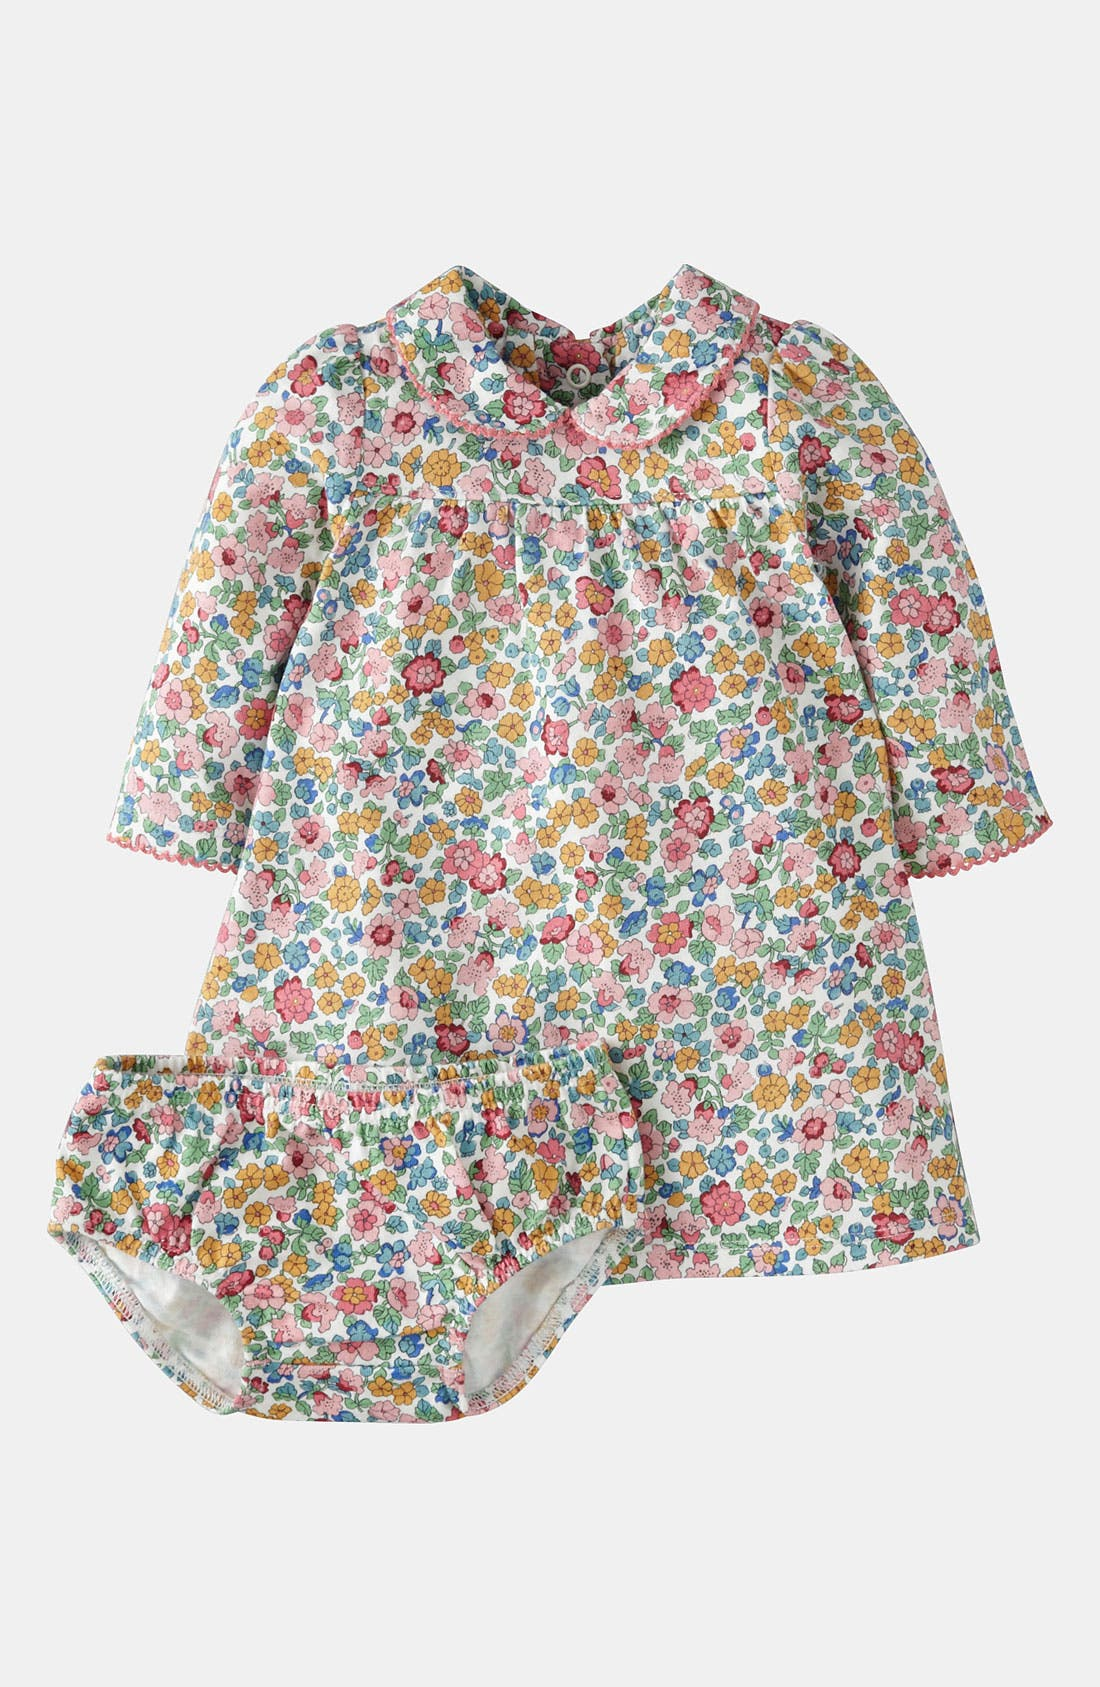 Alternate Image 1 Selected - Mini Boden 'Pretty' Jersey Dress & Bloomers (Baby)